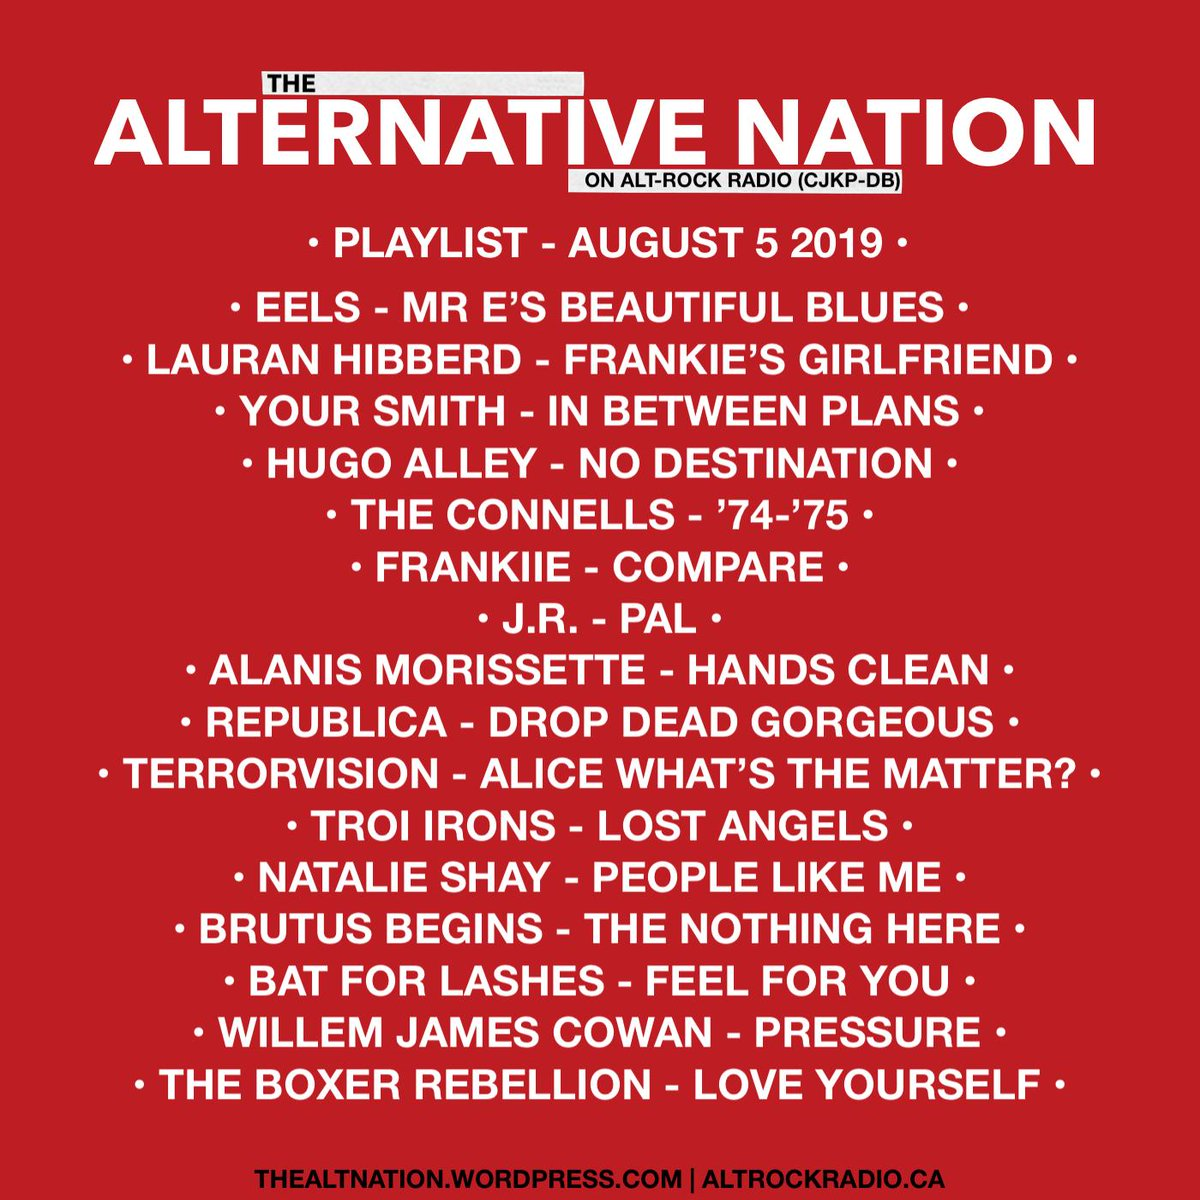 Playlist for last nights edition of The Alternative Nation Radio Show on @altrockradioca. You can stream the show worldwide on http://mixcloud.com/thealternativenation … now! #Radio #Playlist #Music #NewMusic #Classics #indie #alternative #Pop #altrock #yourFMalternative #altrockradio #Mixcloudpic.twitter.com/srq4m20PbW